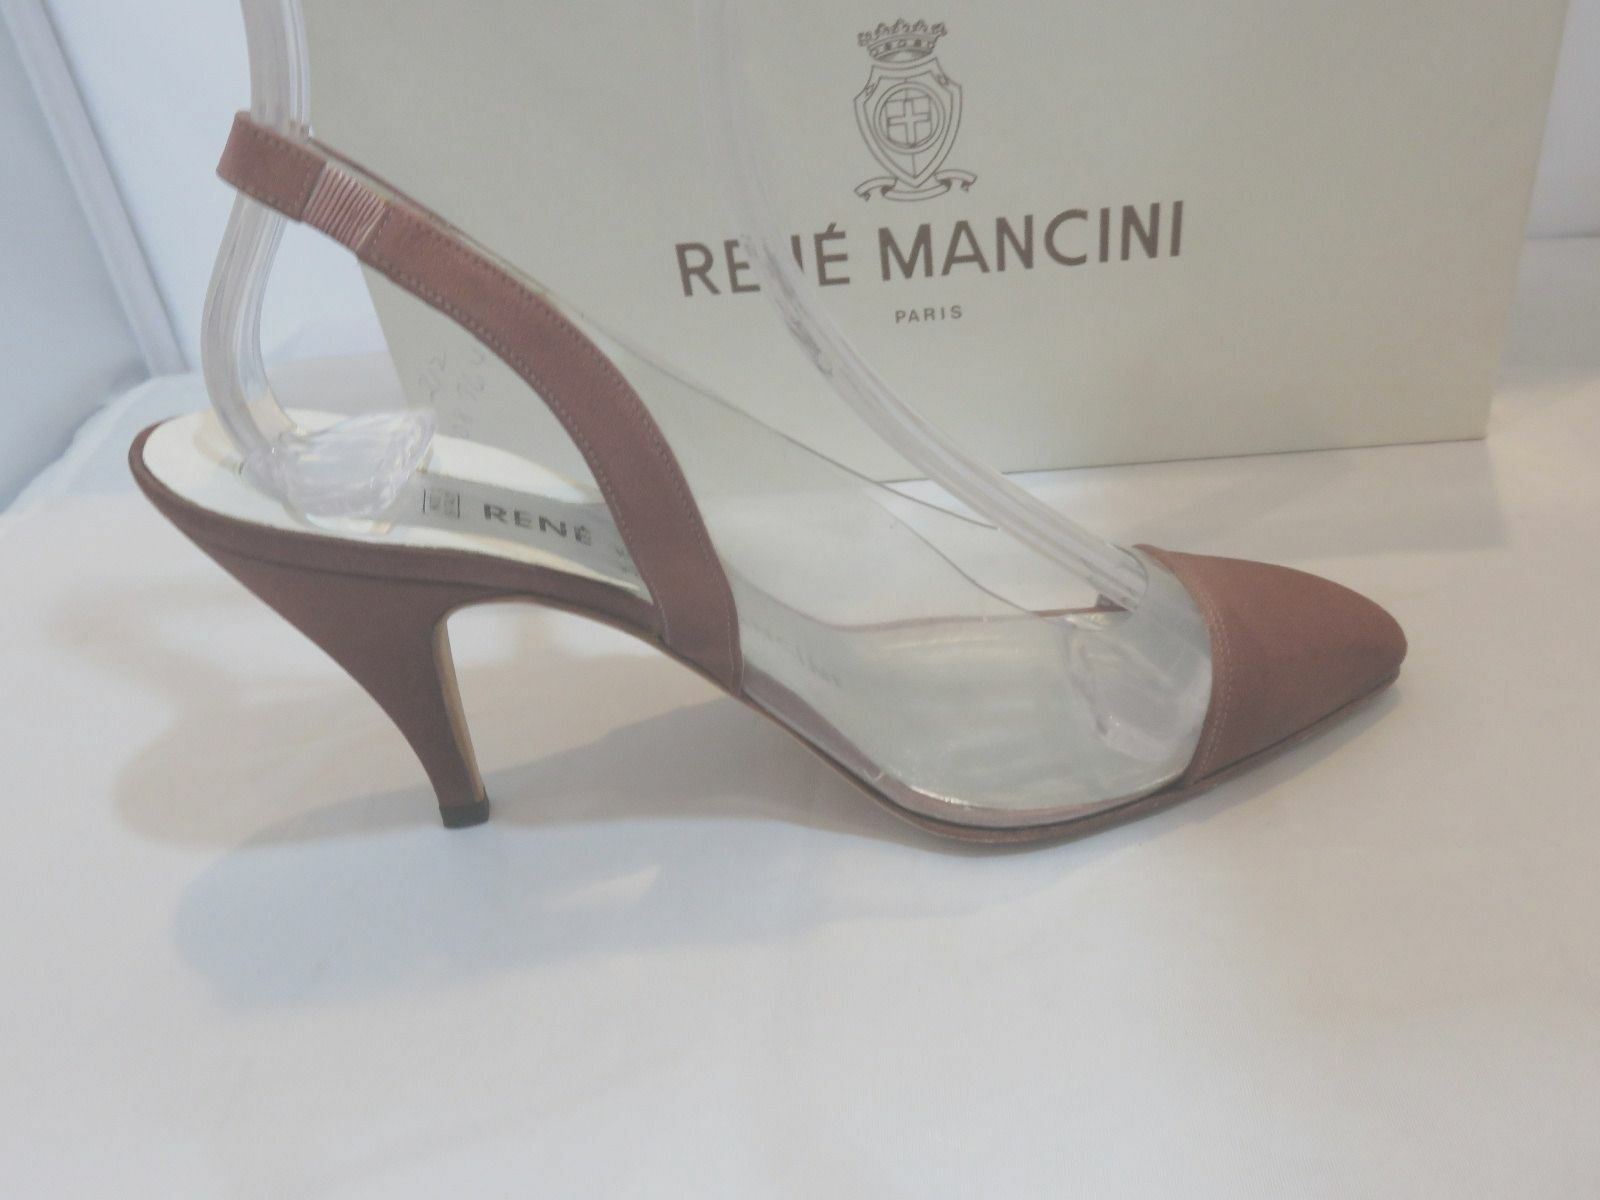 Rene Mancini Clear Rust  Slingbacks High (3in (3in (3in and Up) Taille 36.5 f17dc7